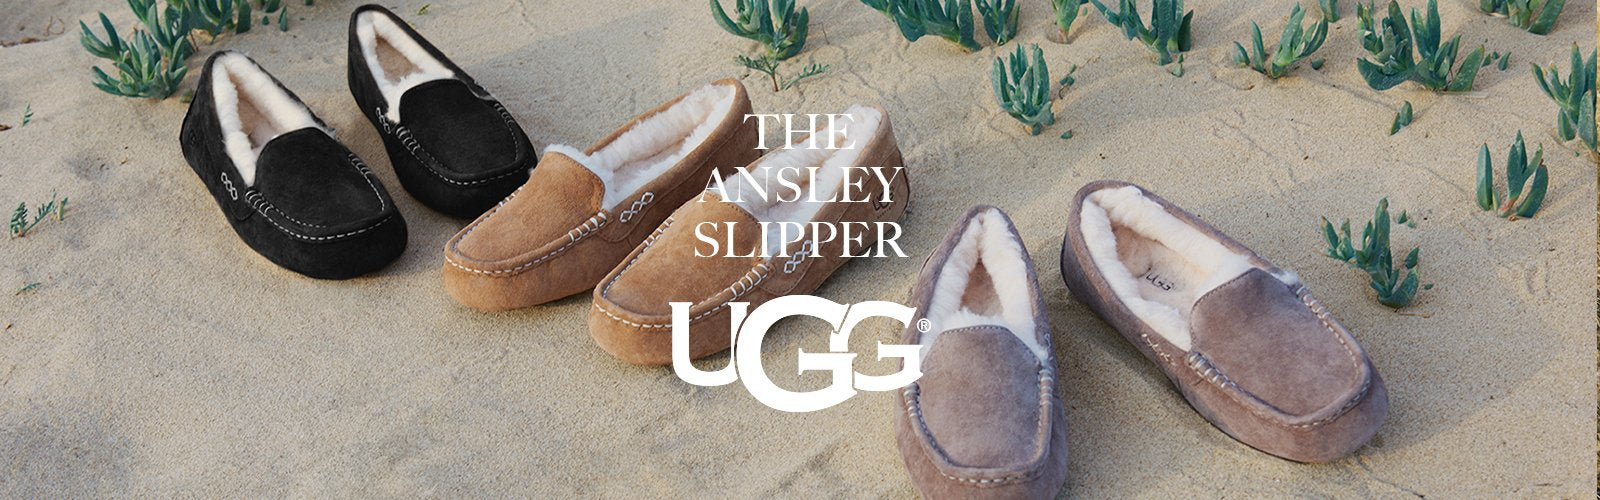 Shop UGG desktop